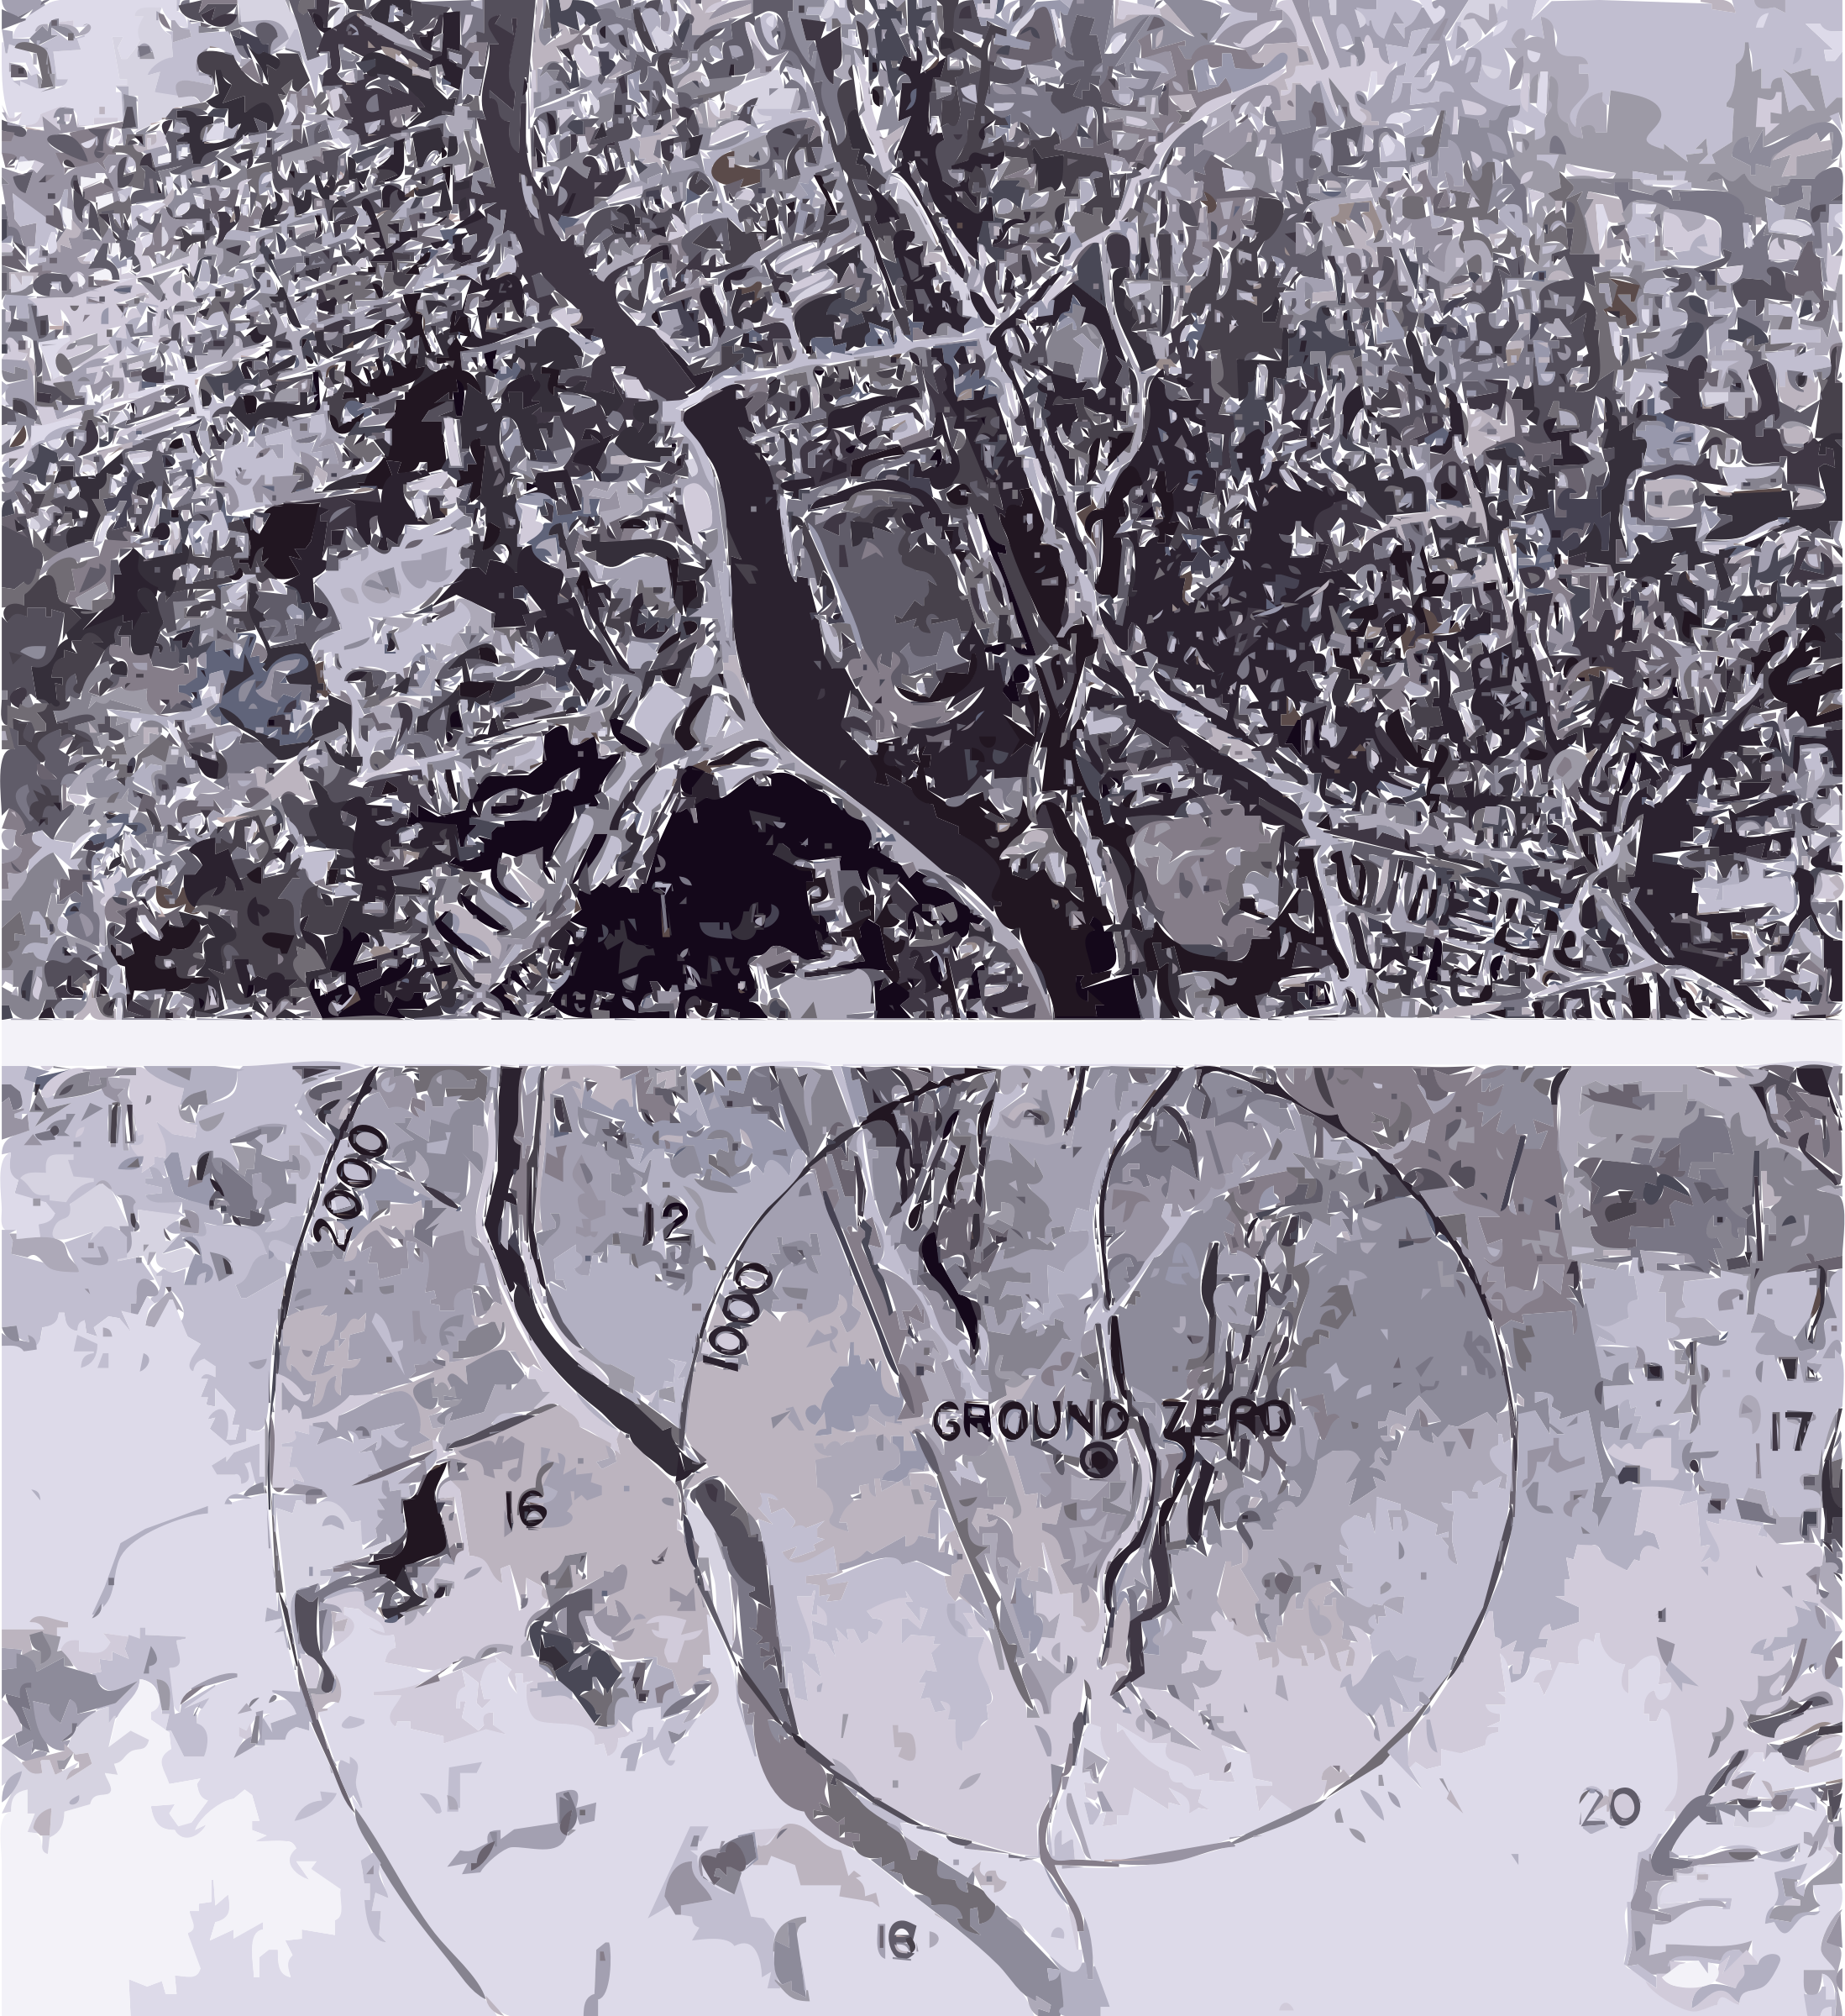 Nagasaki 1945 - Before and after (adjusted) by 5nbz3a+45jqtl07aorc